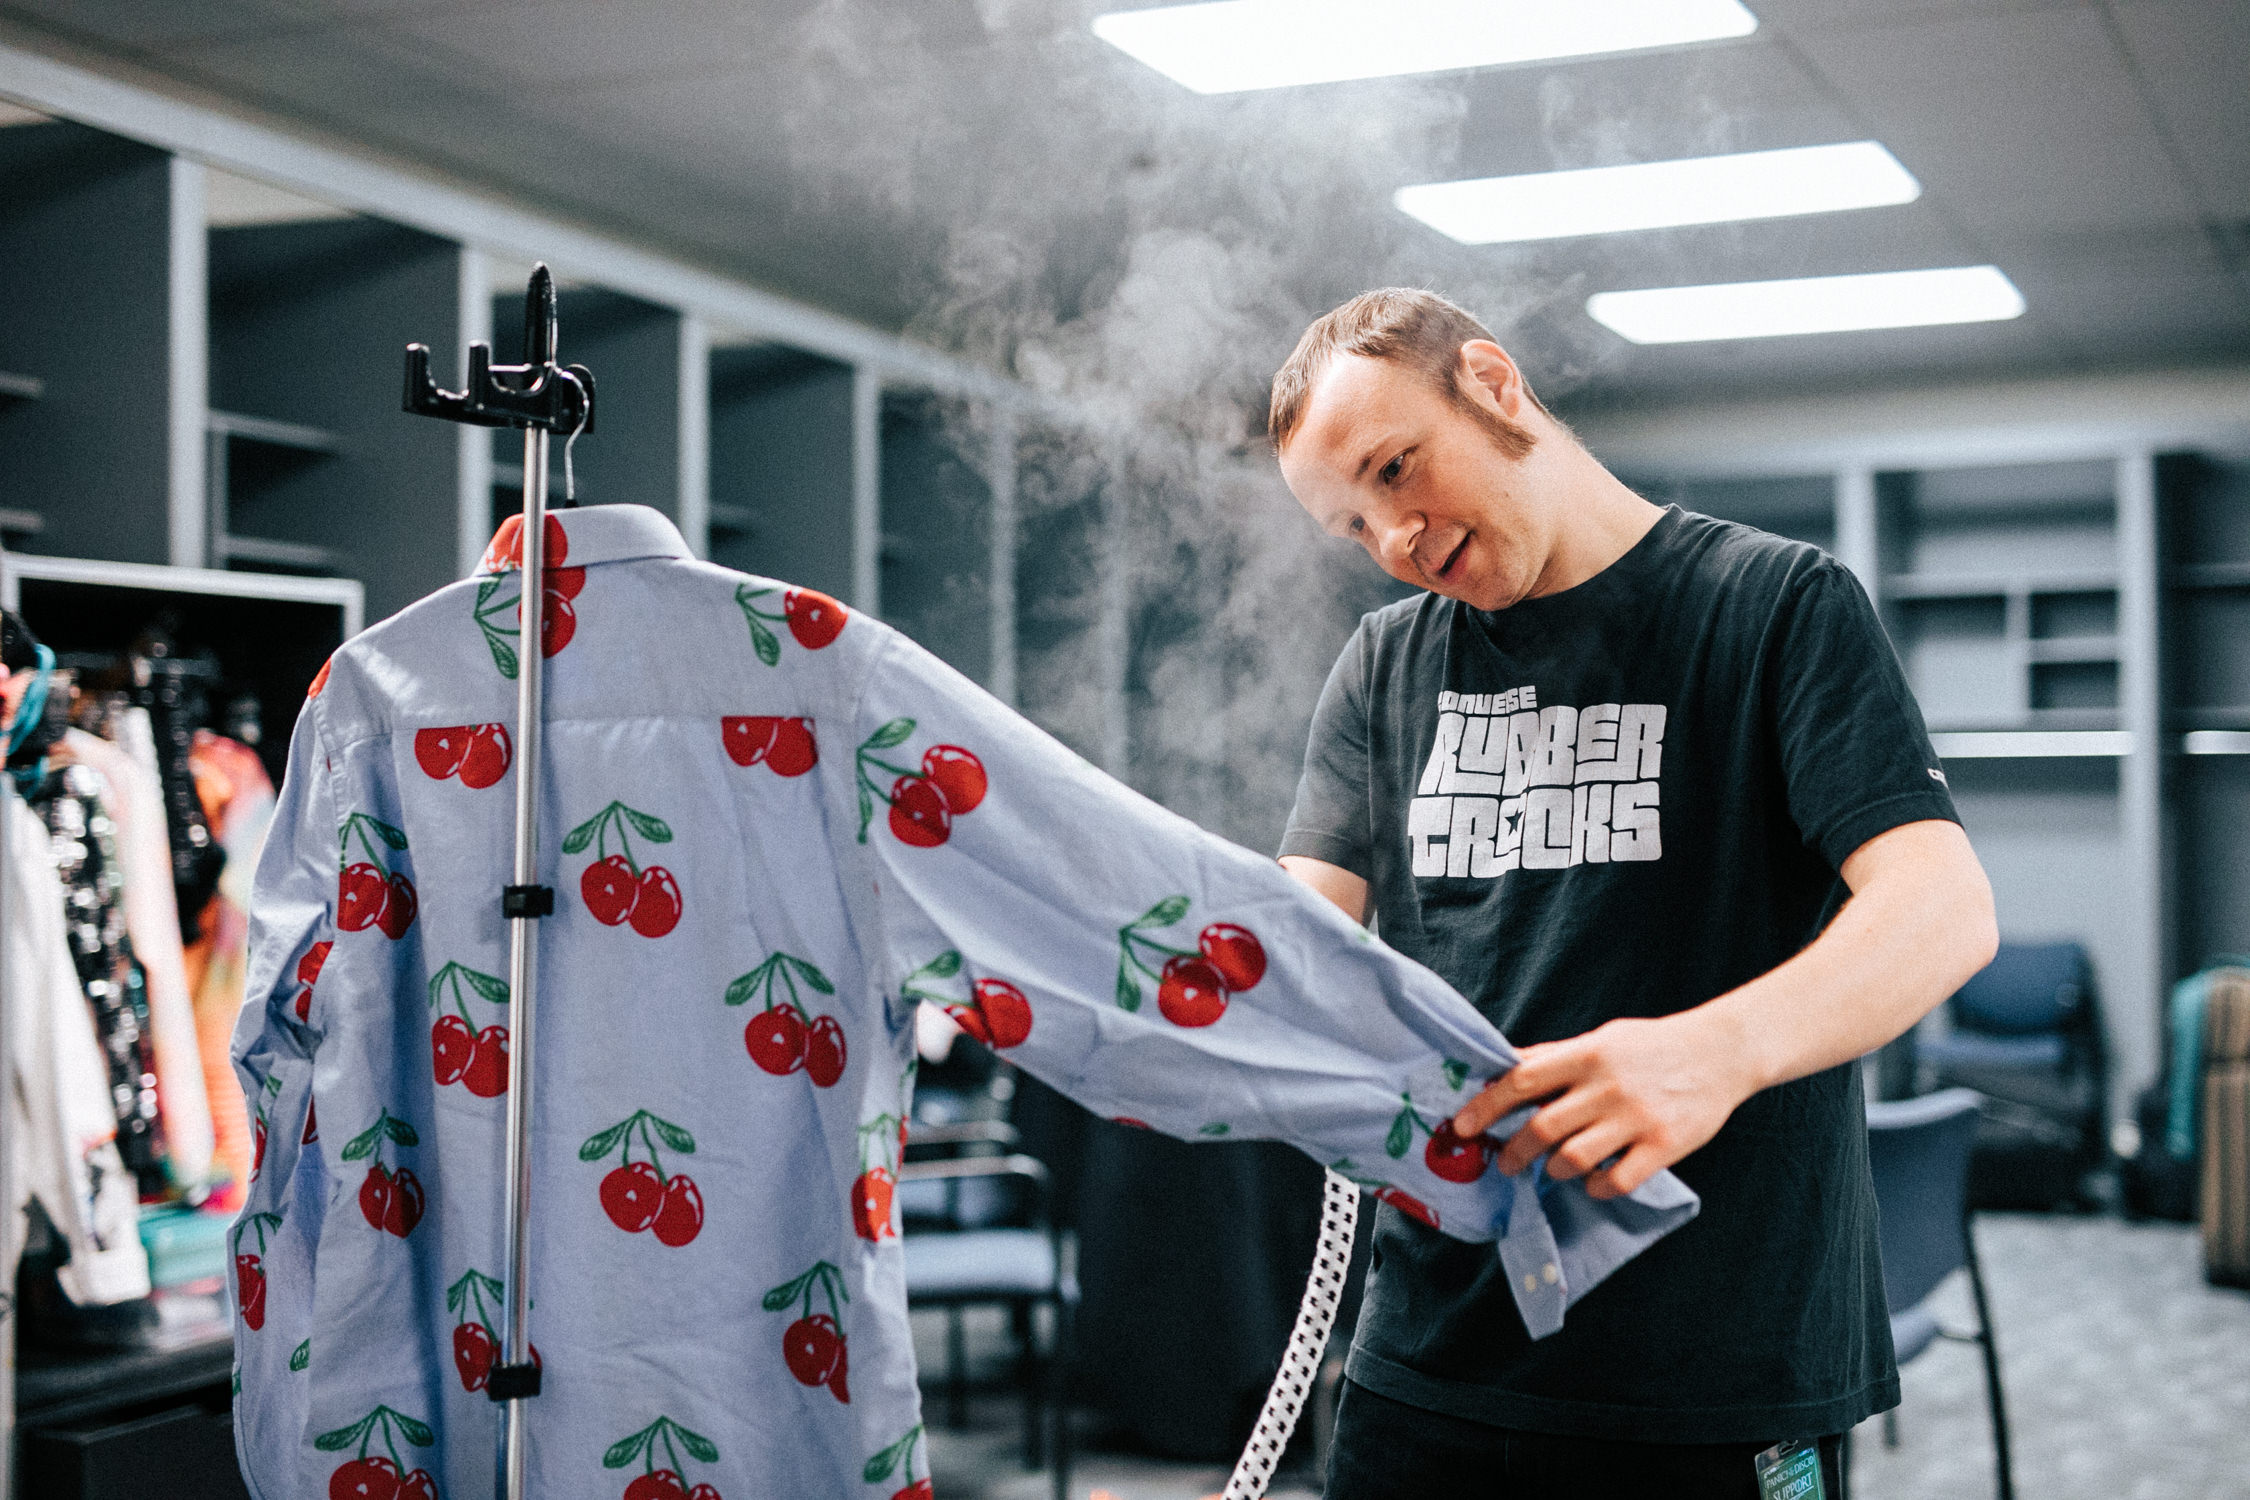 dr-bloom-jesse-tour-backstage-steam-shirt-misterwives-AnnaLeeMedia